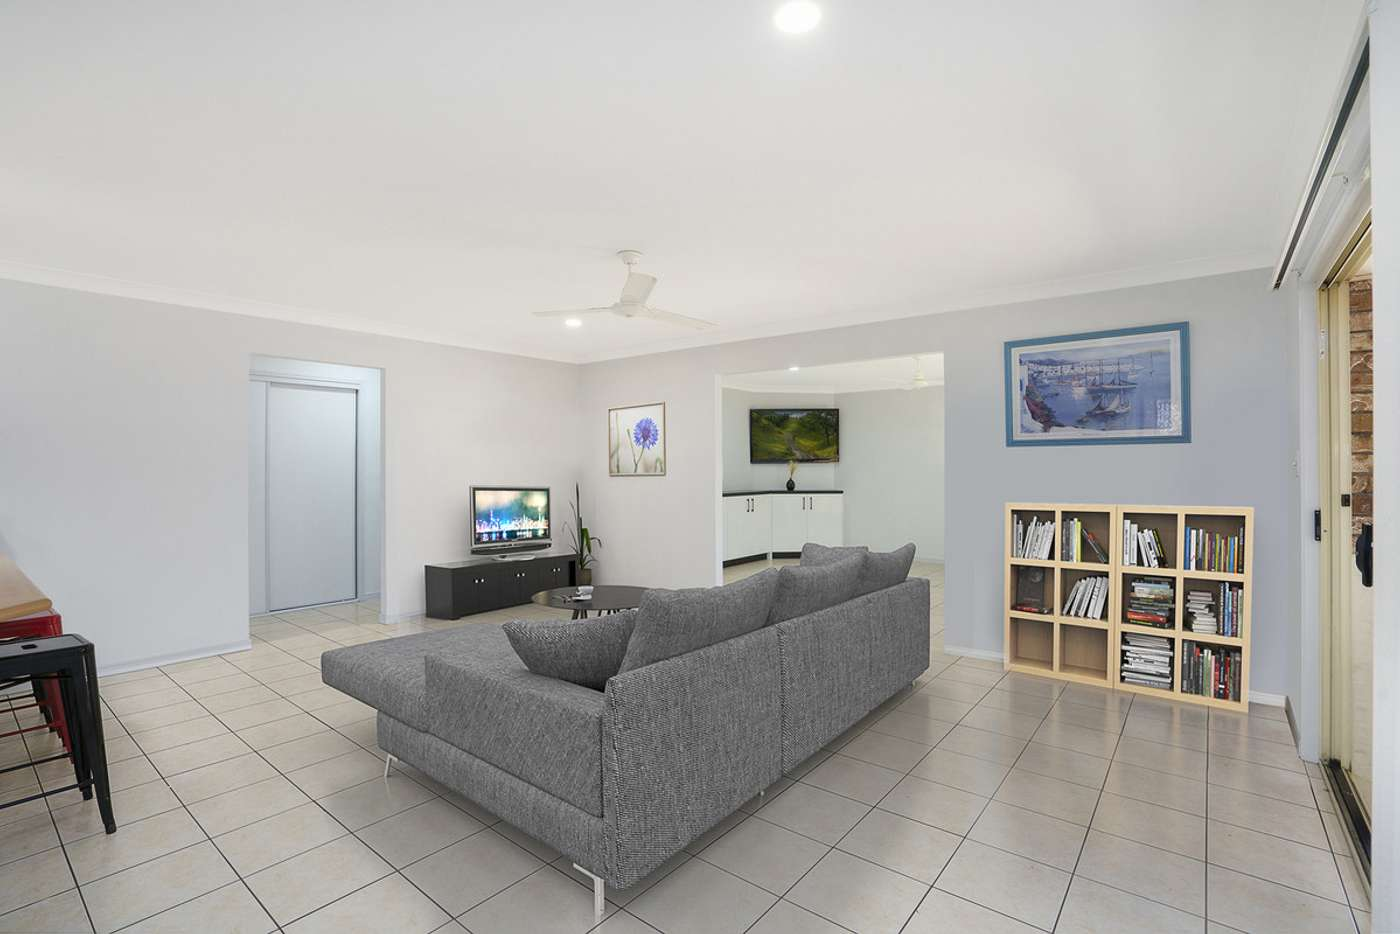 Fifth view of Homely house listing, 53 Cossington Circuit, Maudsland QLD 4210